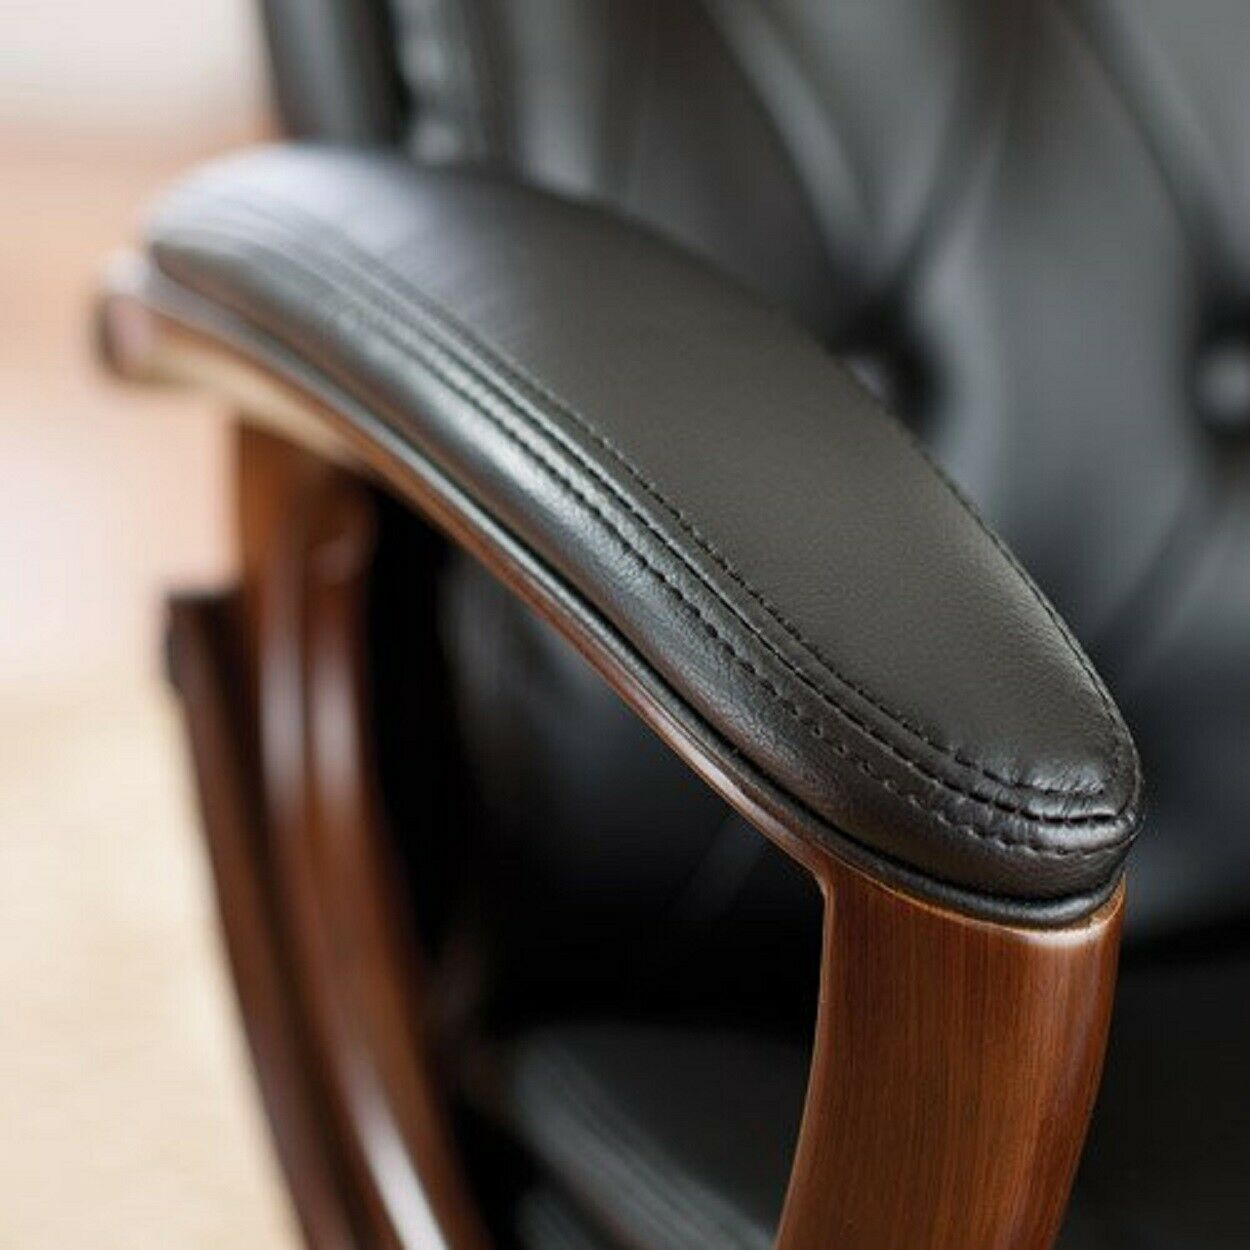 Hekman 79253 28 W Executive Button Tufted Leather Office Chair Black For Sale Online Ebay